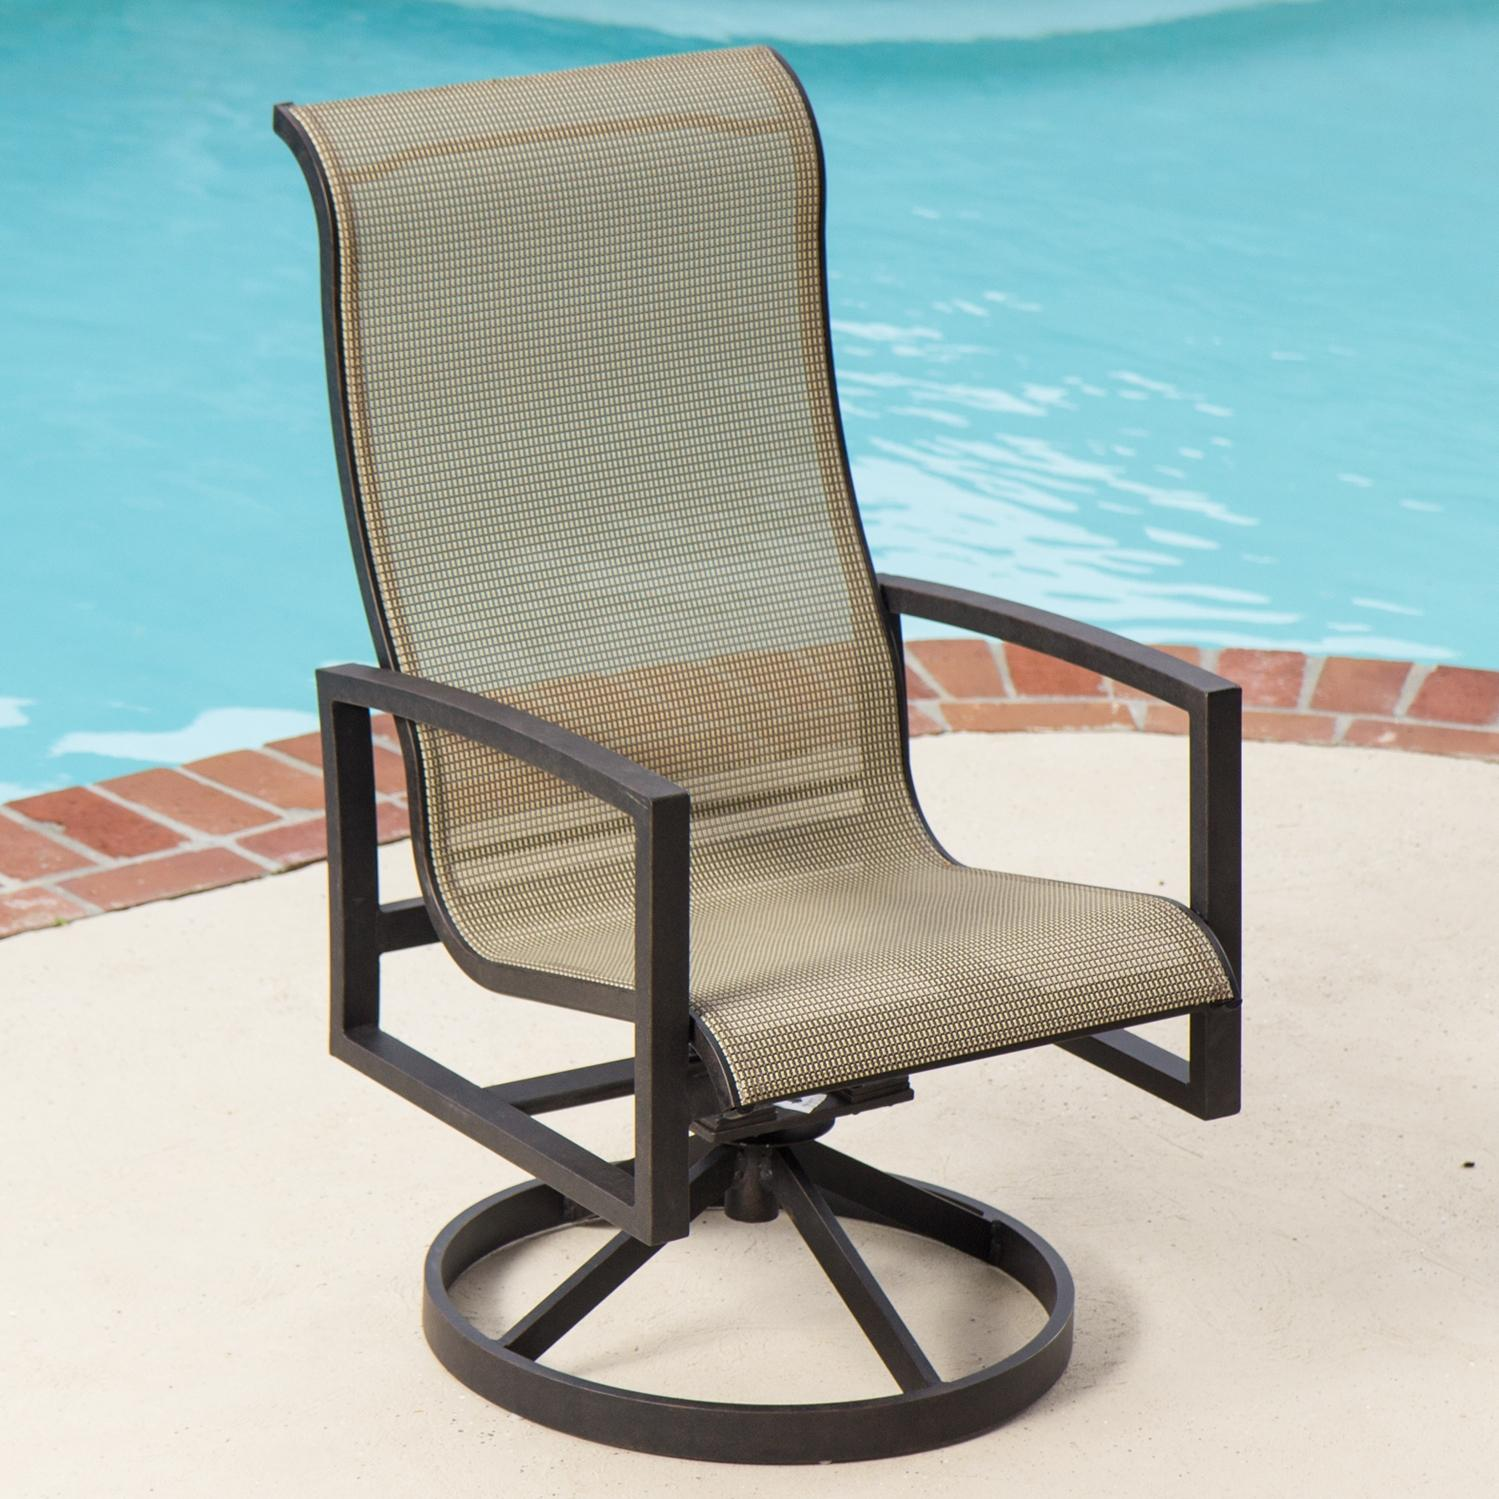 Amazing WASHINGTON WHTM Casual Living Worldwide Has Recalled About Two  Million Swivel Patio Chairs It Sold Exclusively At Home Depot Because The  Base Can ...